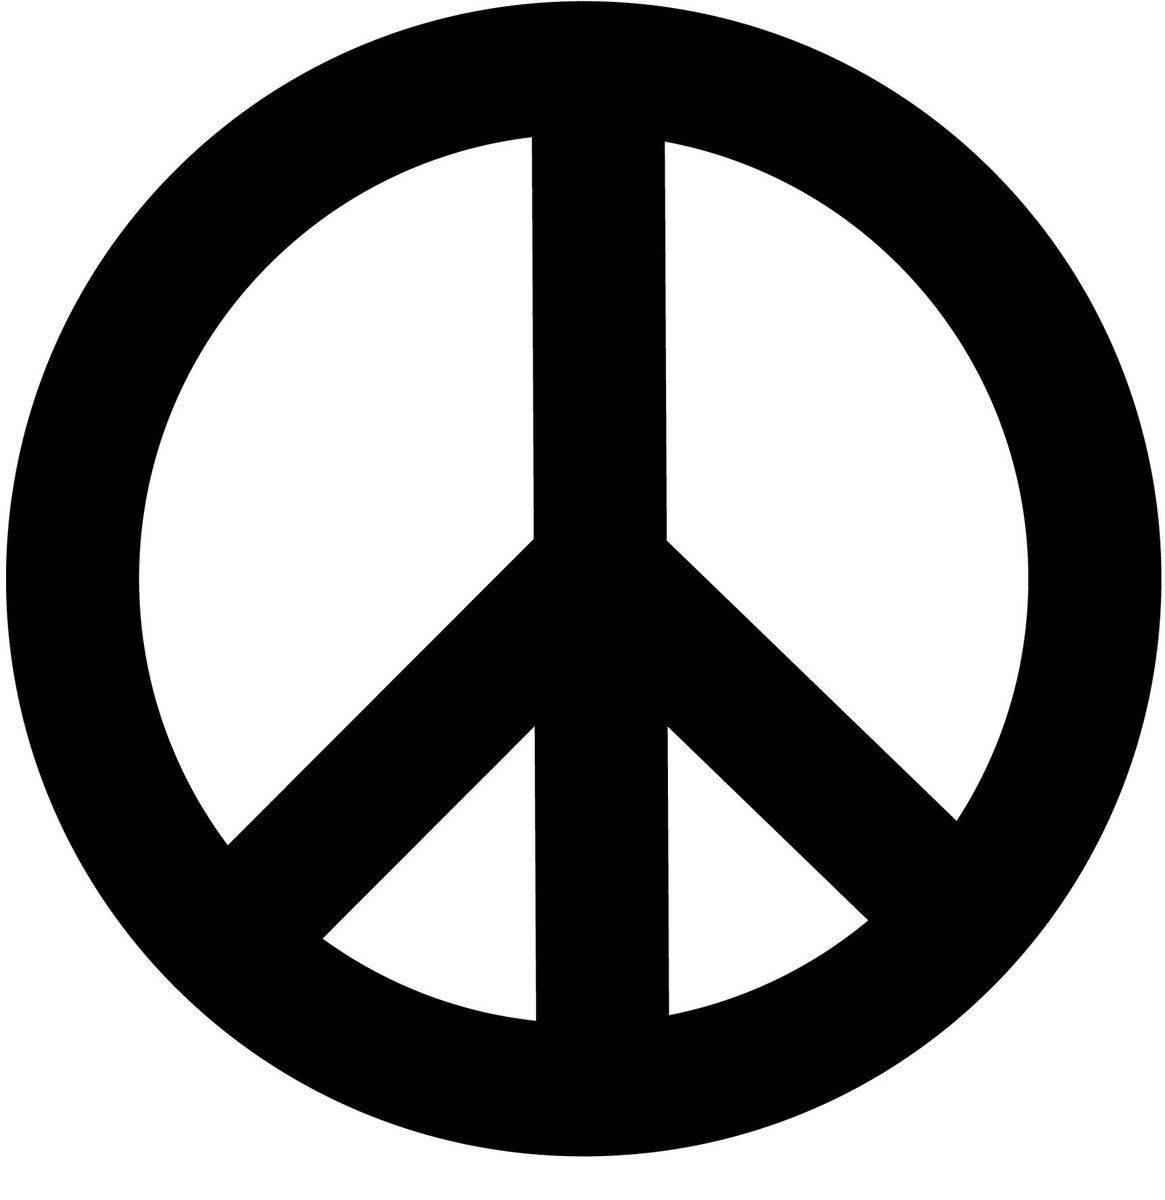 Taxes For Peace On Twitter Excellent Idea From Cnduk To Draw